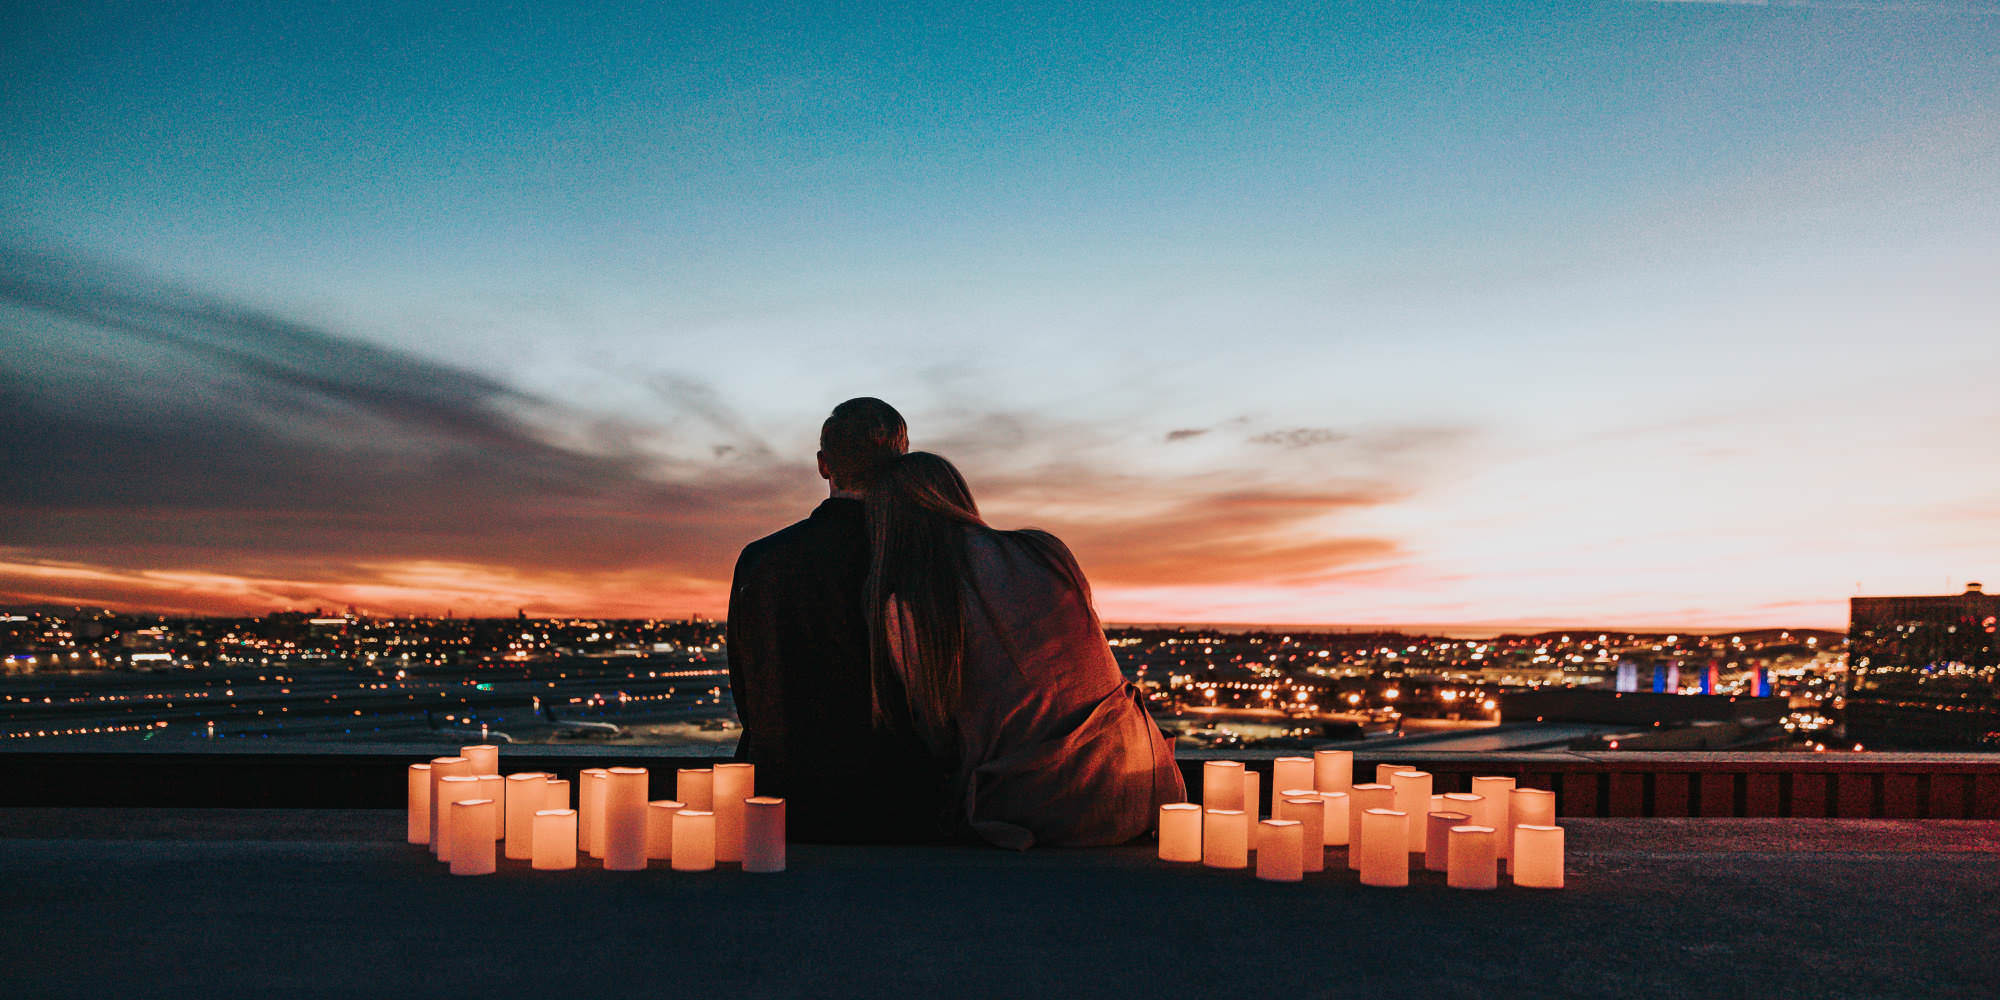 A silhouetted man and woman sit on a building rooftop at sunset. She is resting her head on his shoulder, and they are faced away from the camera, looking out over the city skyline. They are surrounded by large lit candles.